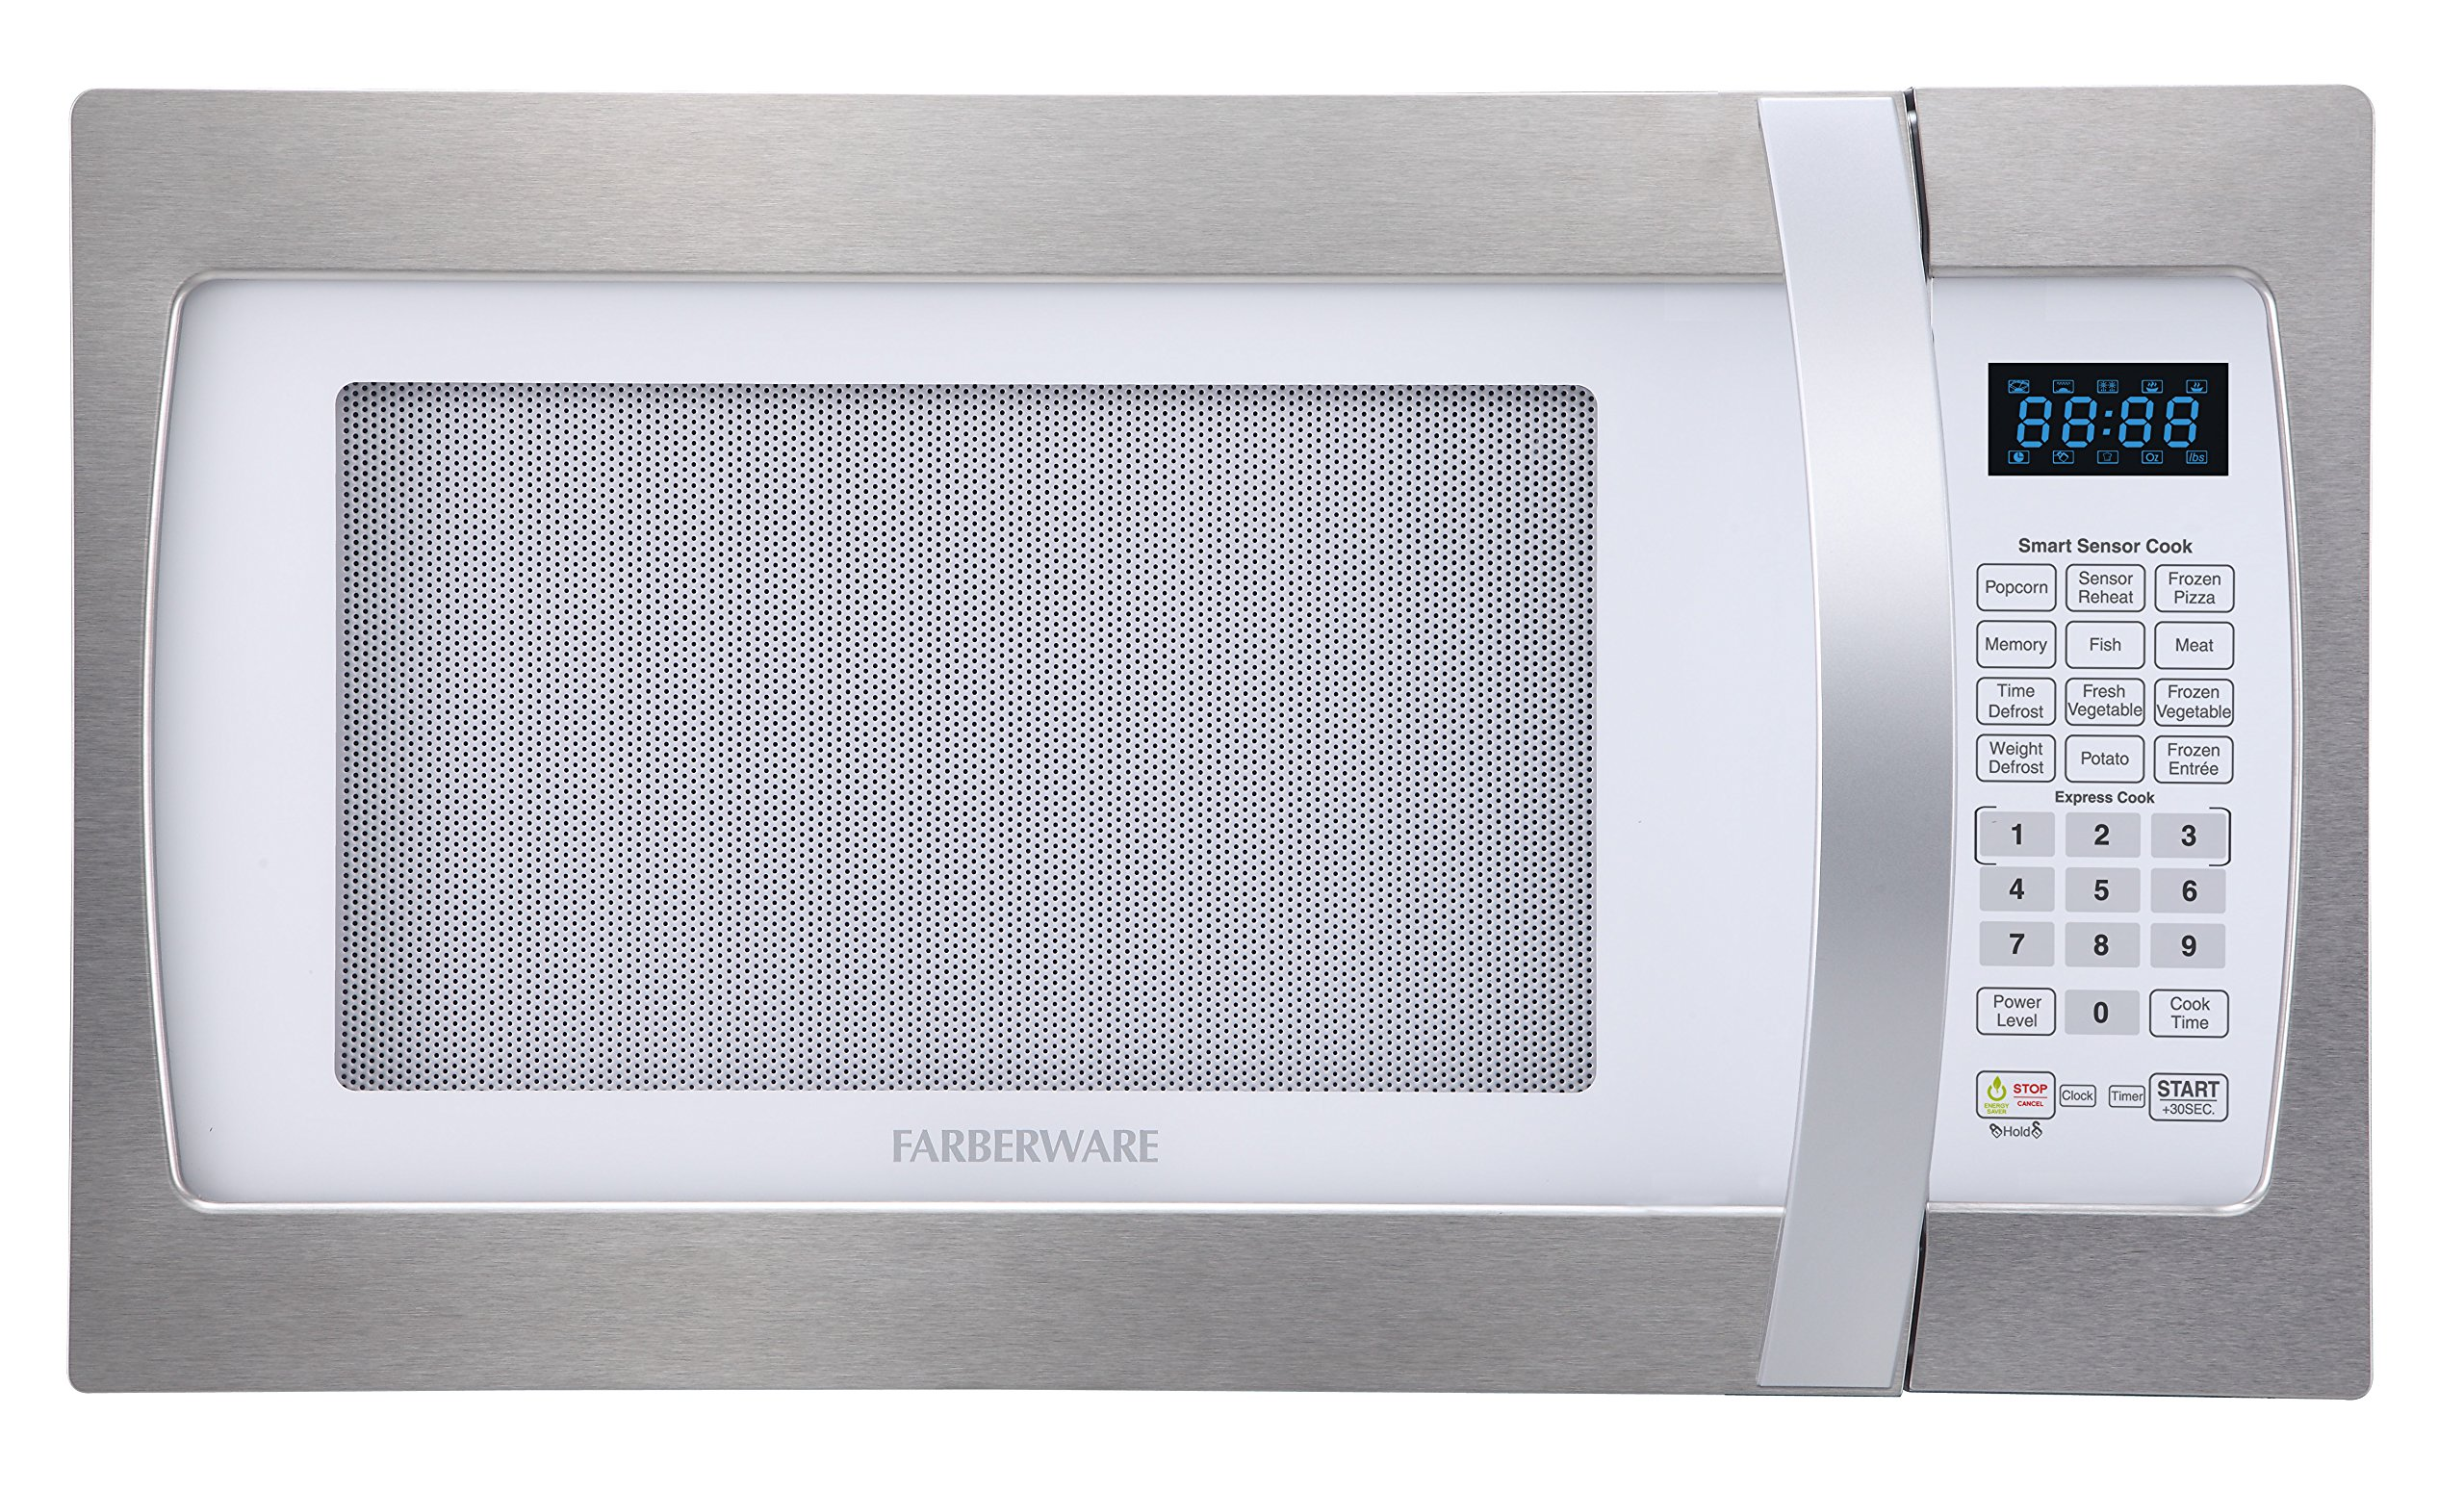 Farberware Professional FMO13AHTPLE 1.3 Cu. Ft. 1100-Watt Microwave Oven with Smart Sensor Cooking, ECO Mode and Blue LED Lighting, White and Platinum by Farberware